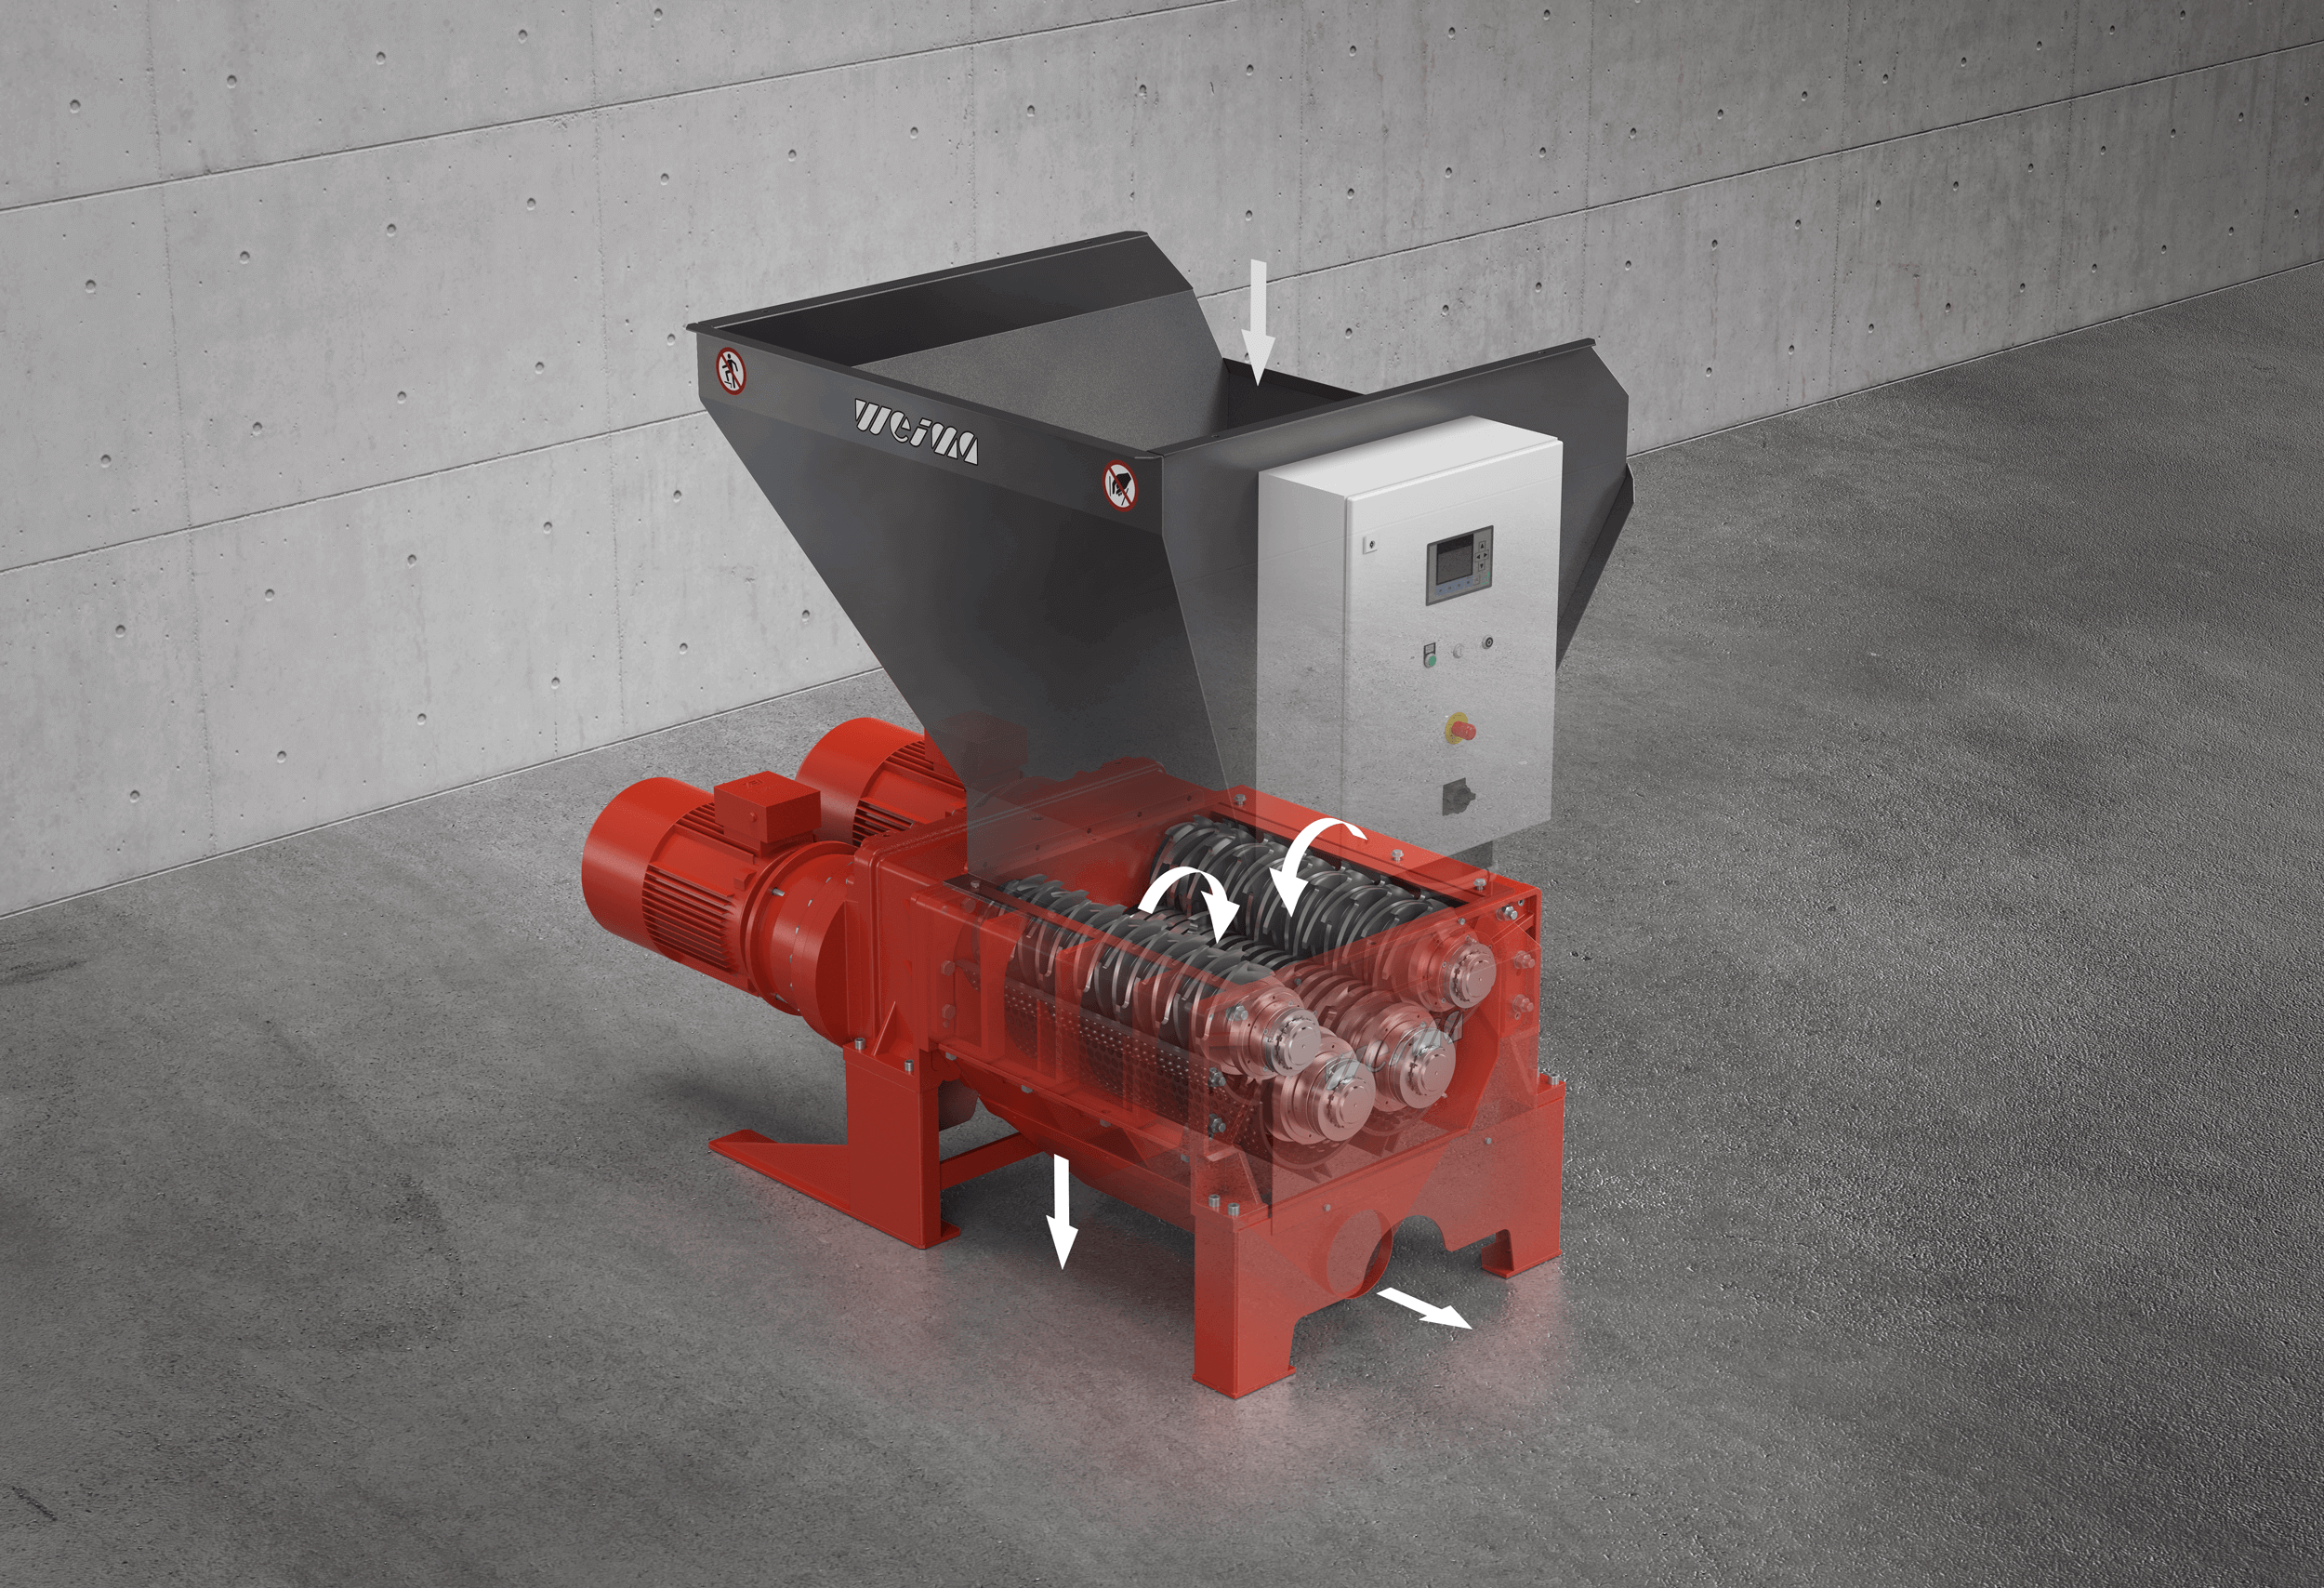 X-ray view of the WEIMA ZM 40 four-shaft shredder